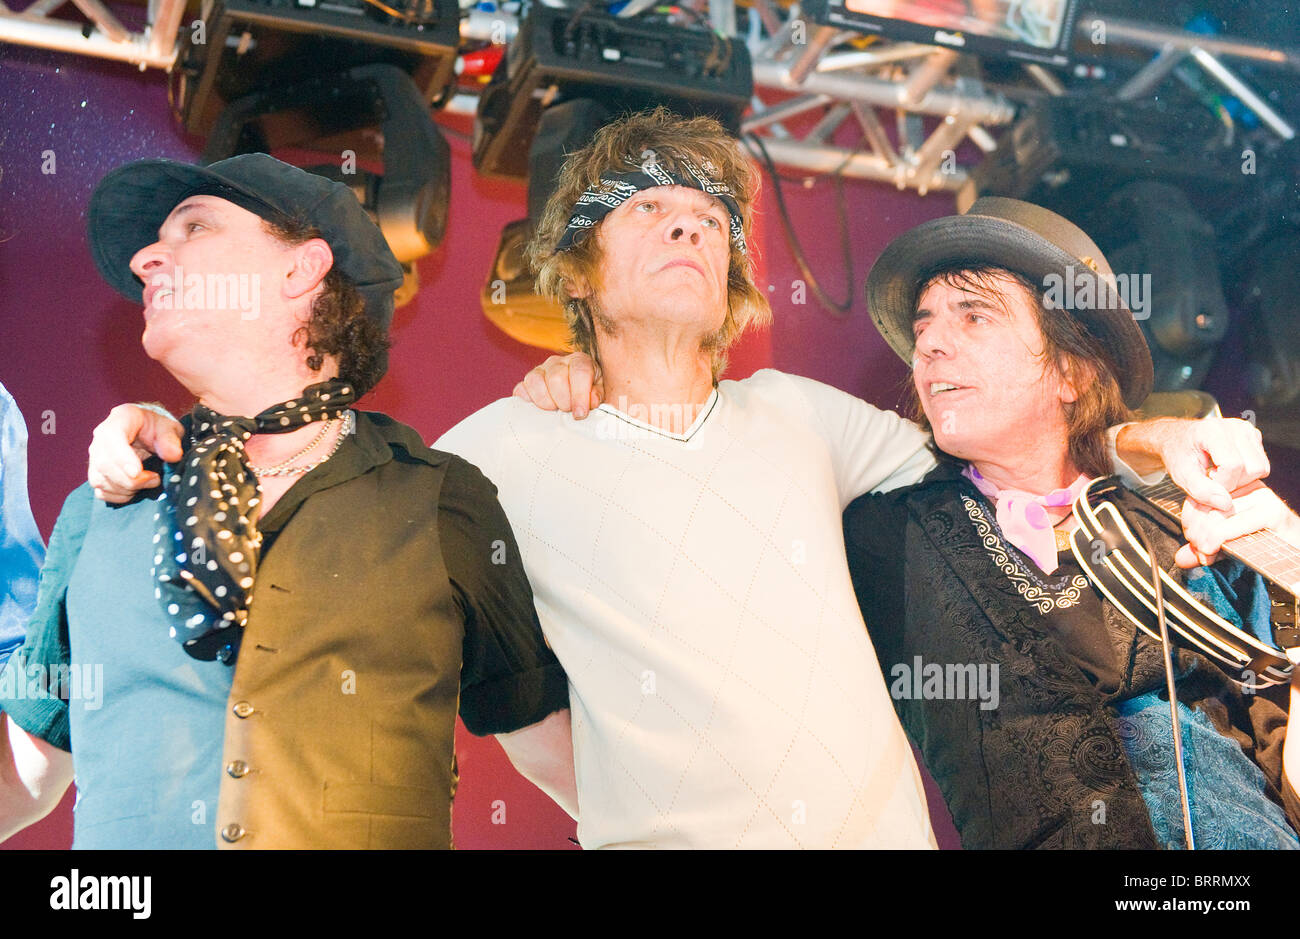 The New York Dolls Live Concert , Silvain Silvain and David Johansen - Stock Image